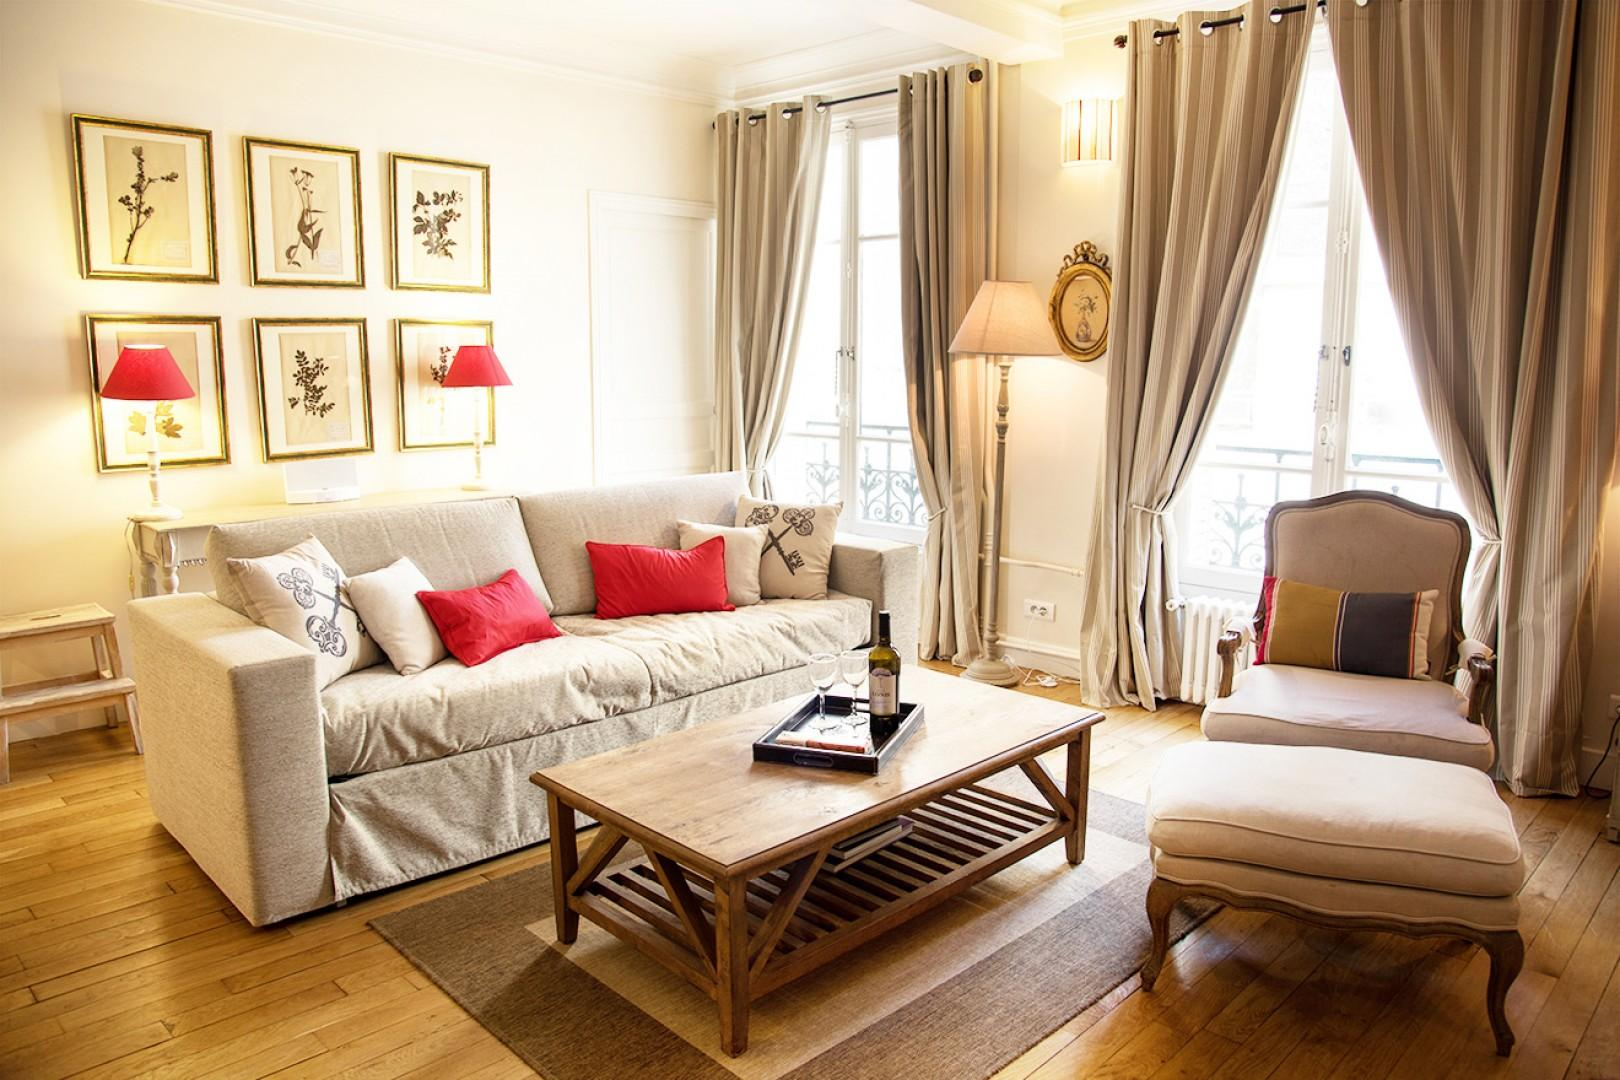 Welcome to the Rully rental with comfortable furnishings and refined décor.